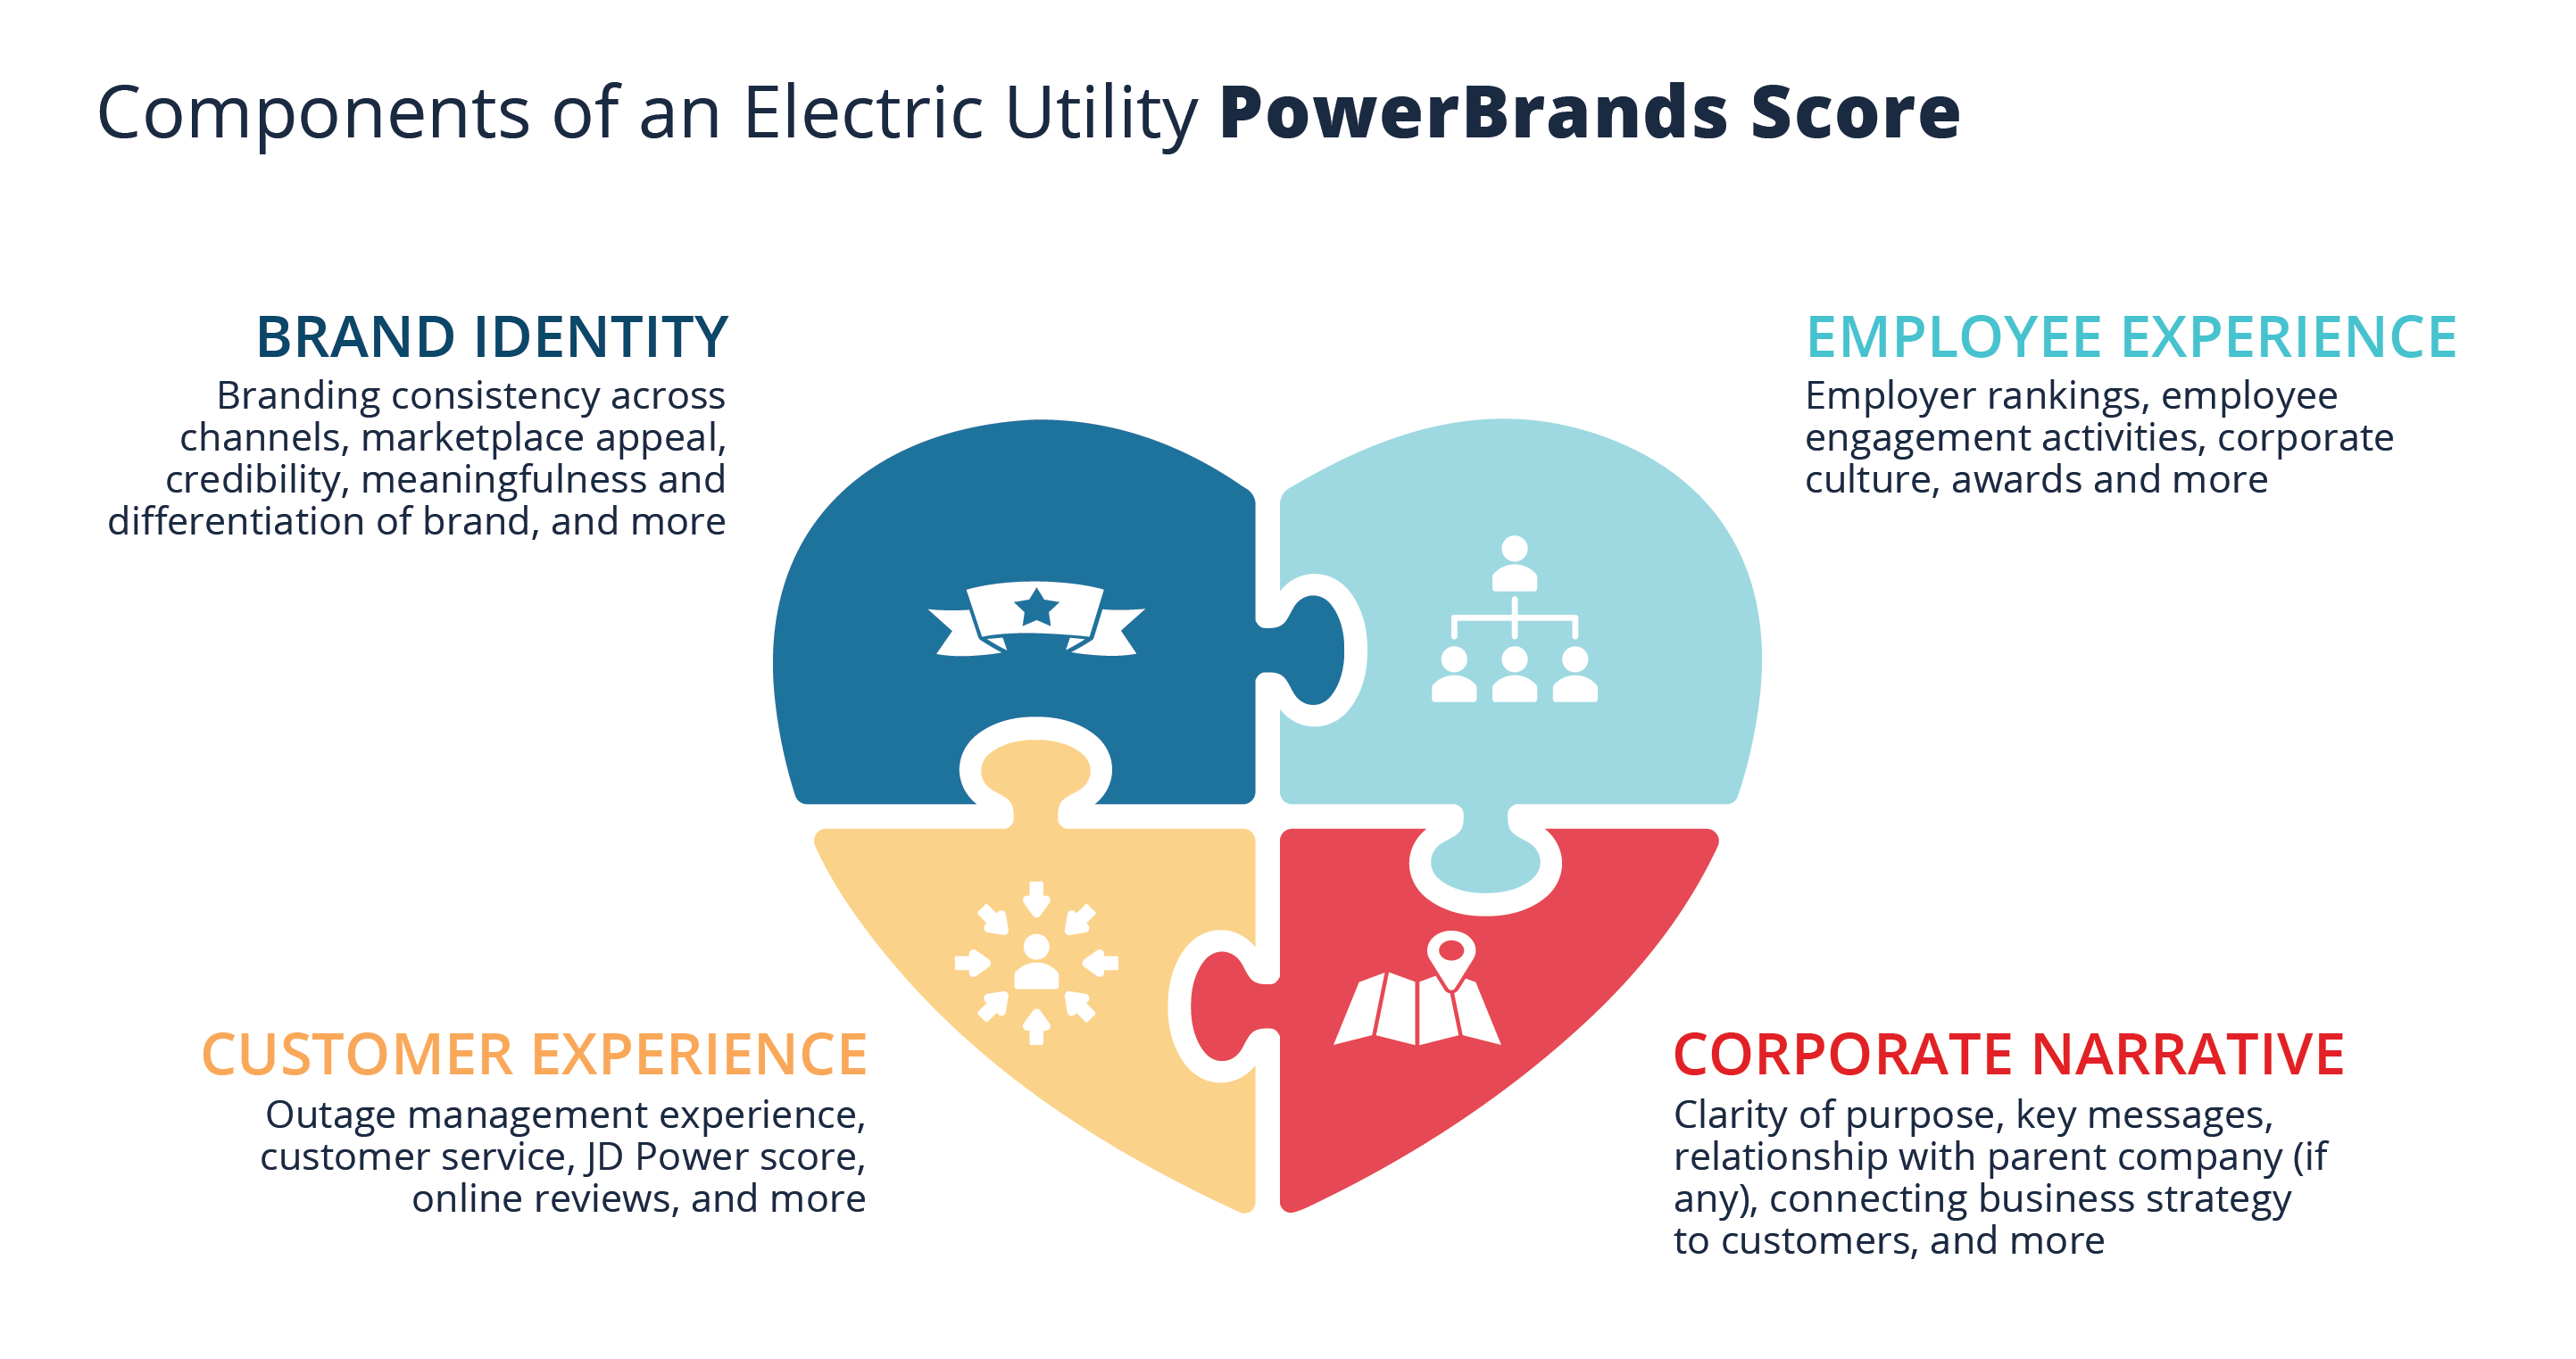 Components of an Electric Utility PowerBrands Score